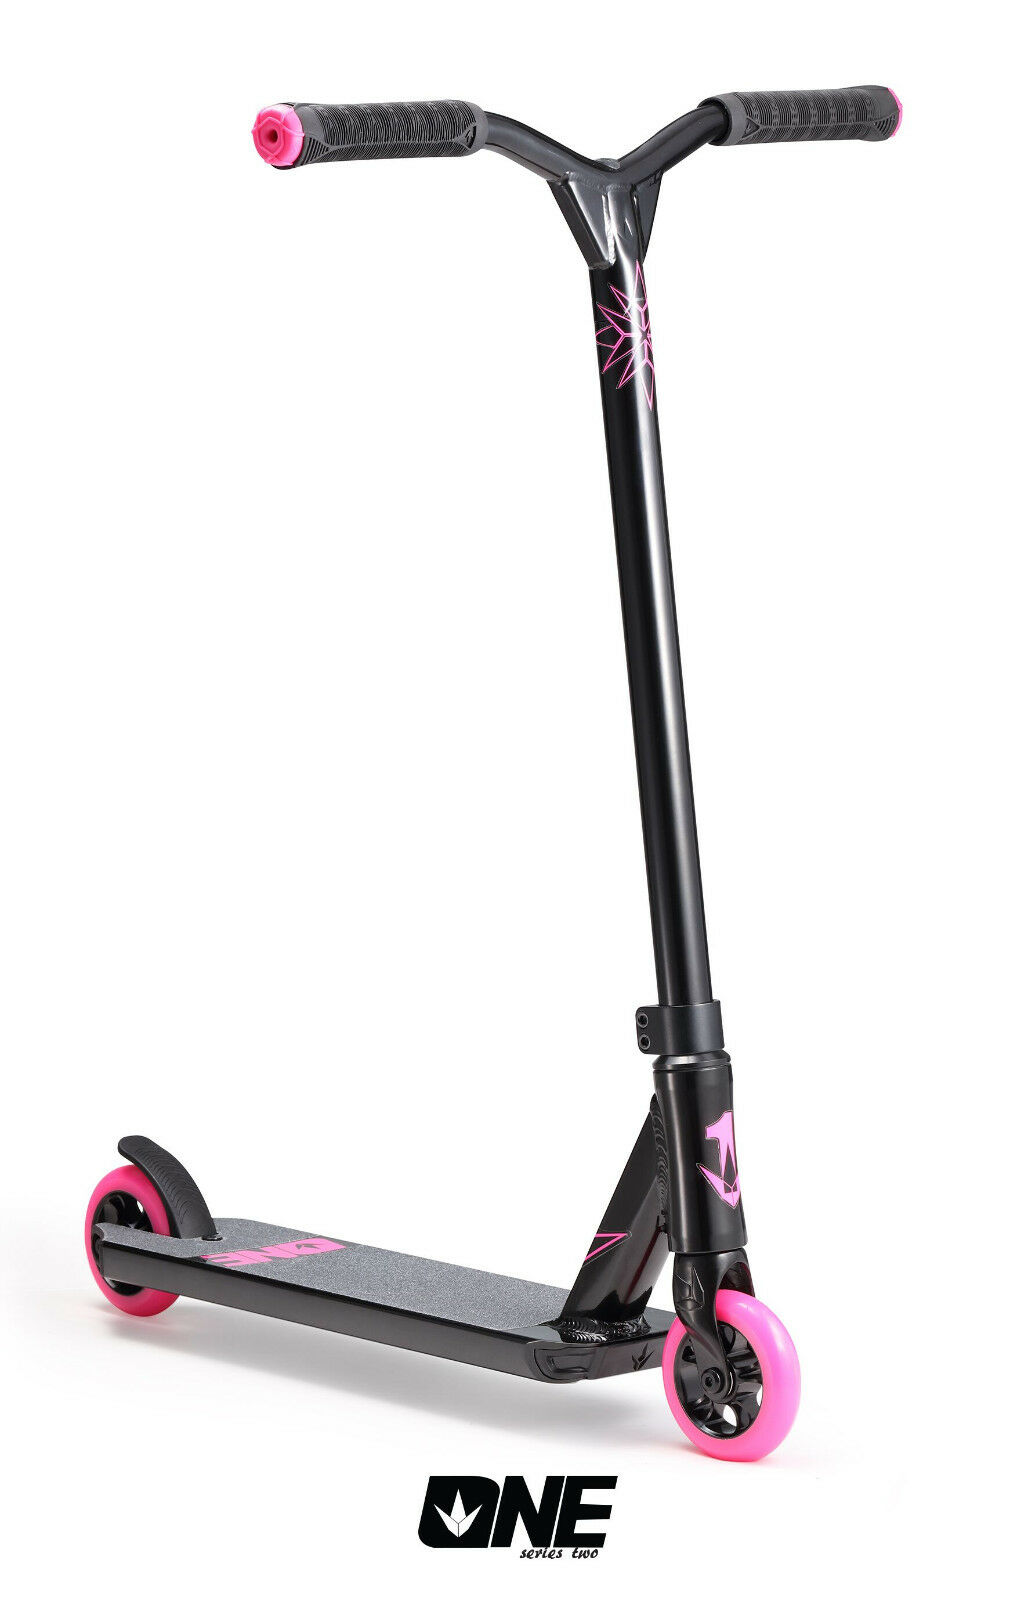 Envy One S2 Complete Scooter - Rosa